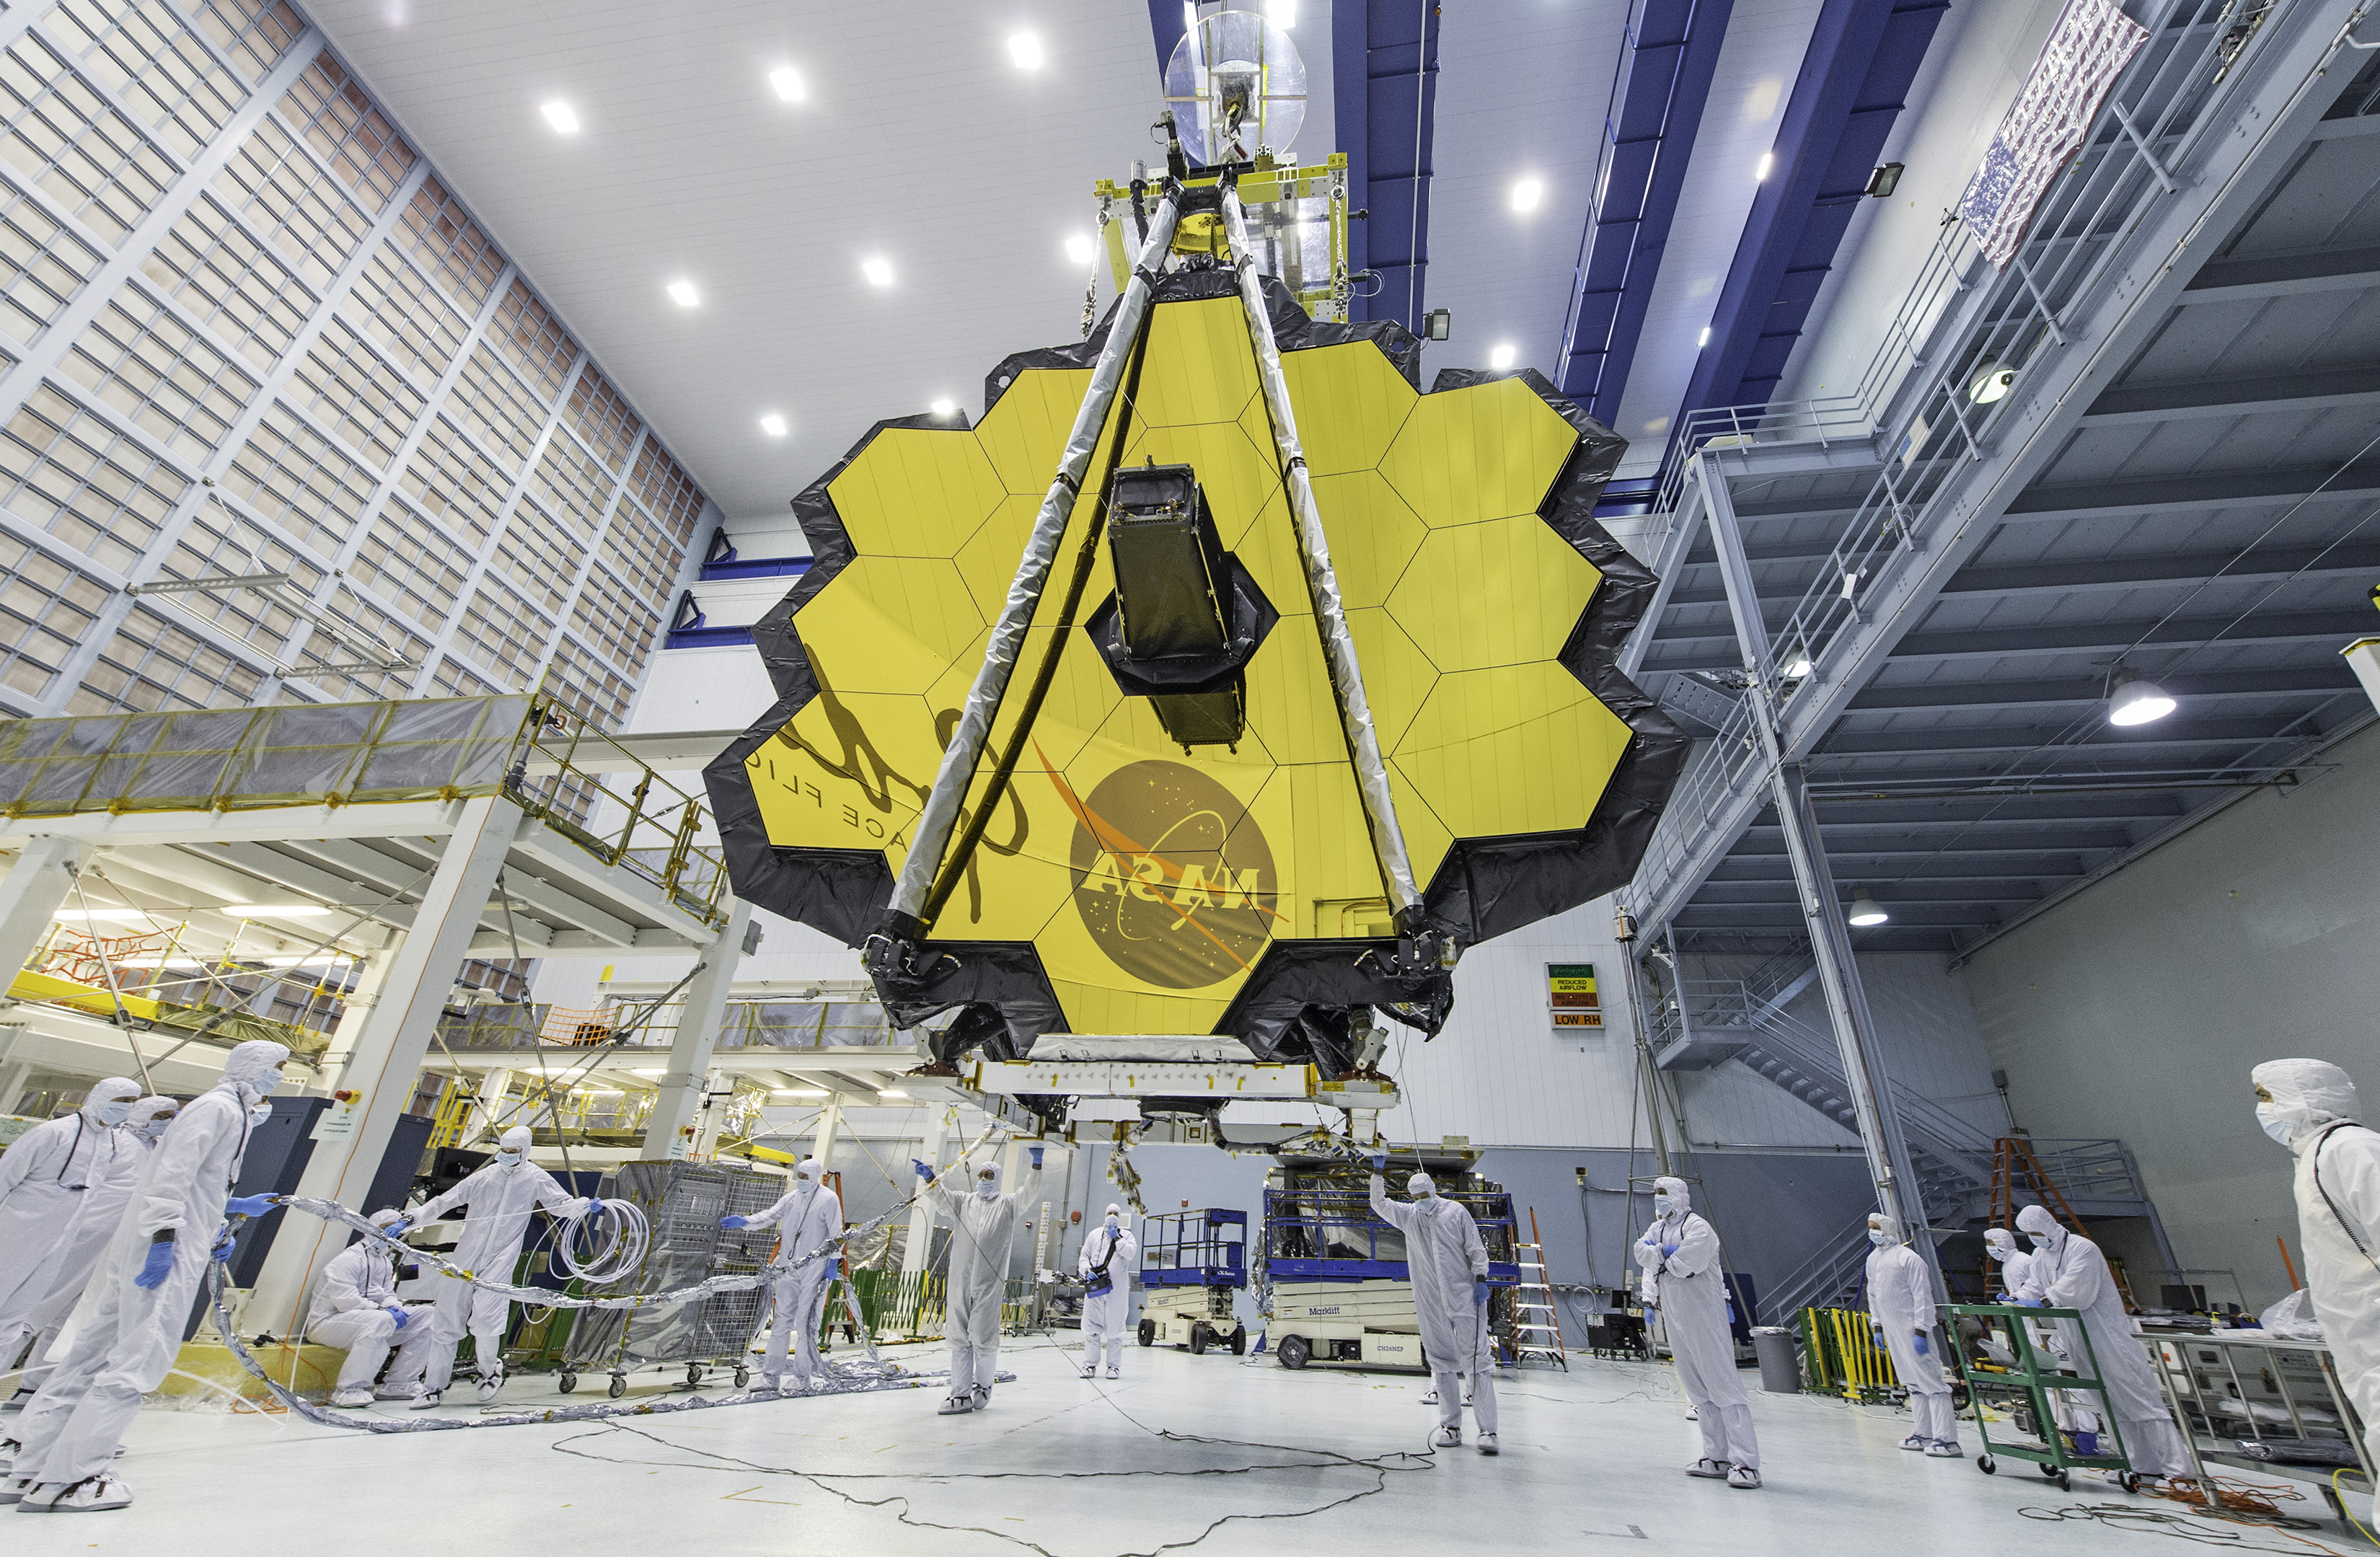 A large golden colored disc with a sensor in the middle and scientists standing below.